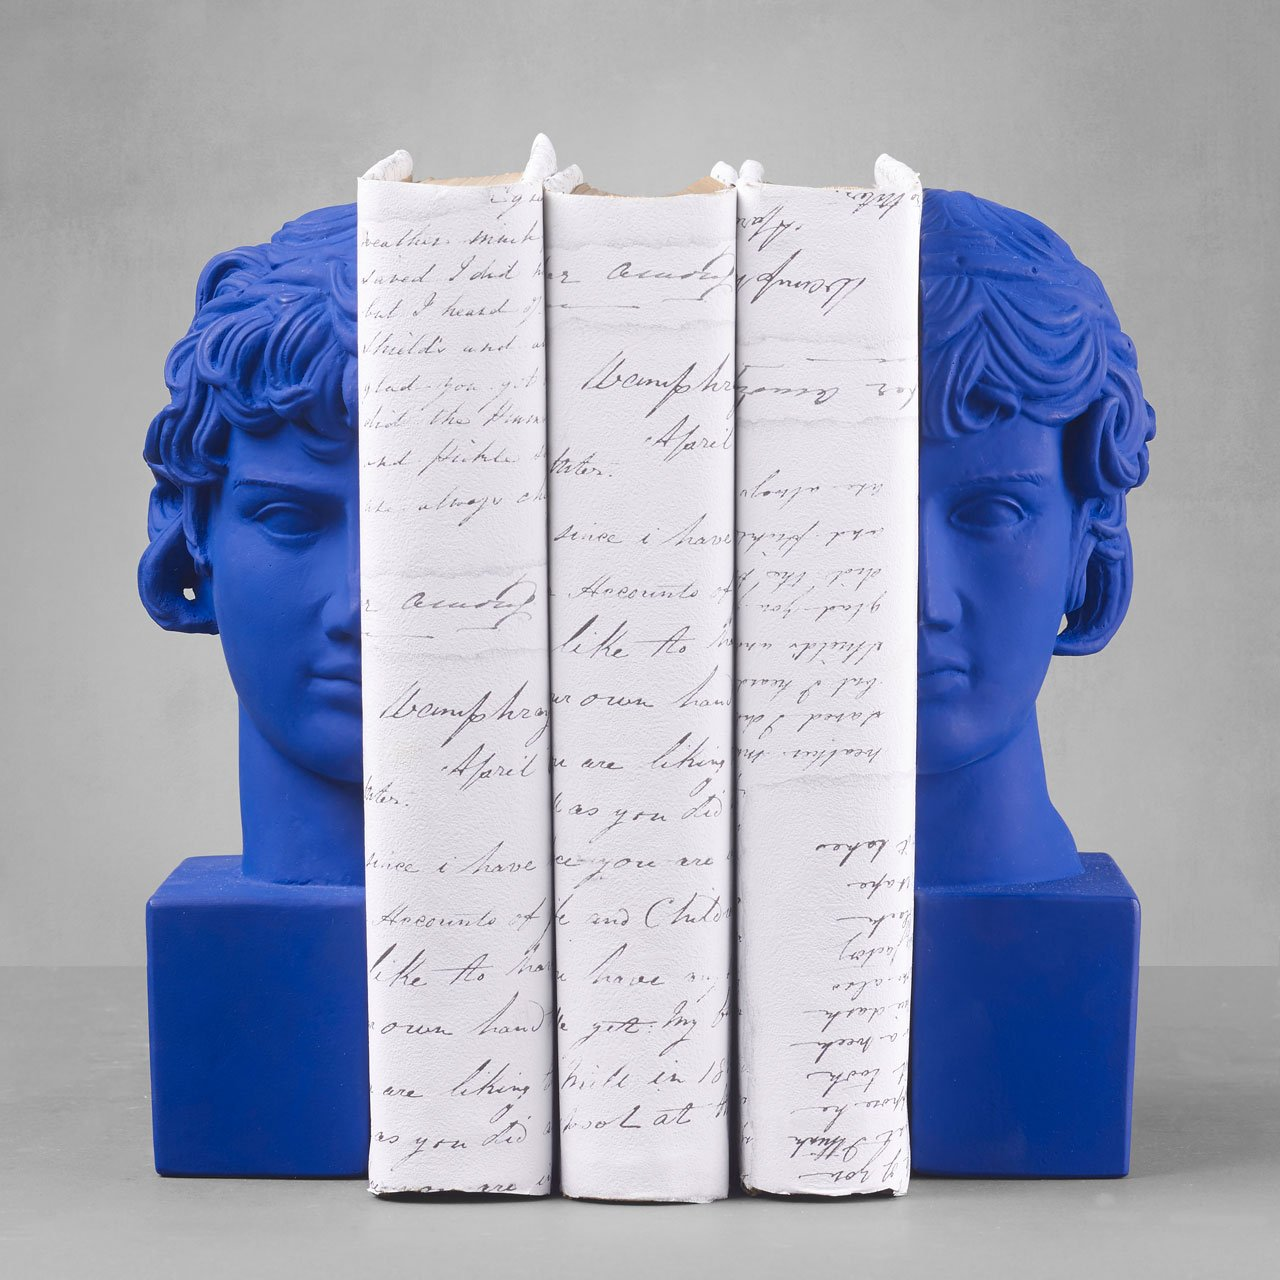 Antinoos Set of 2 Bookends.  Weight: 4500 grDimension: 29.5x6.5x16.5 cmMaterial: ceramineColor: yves klein blue